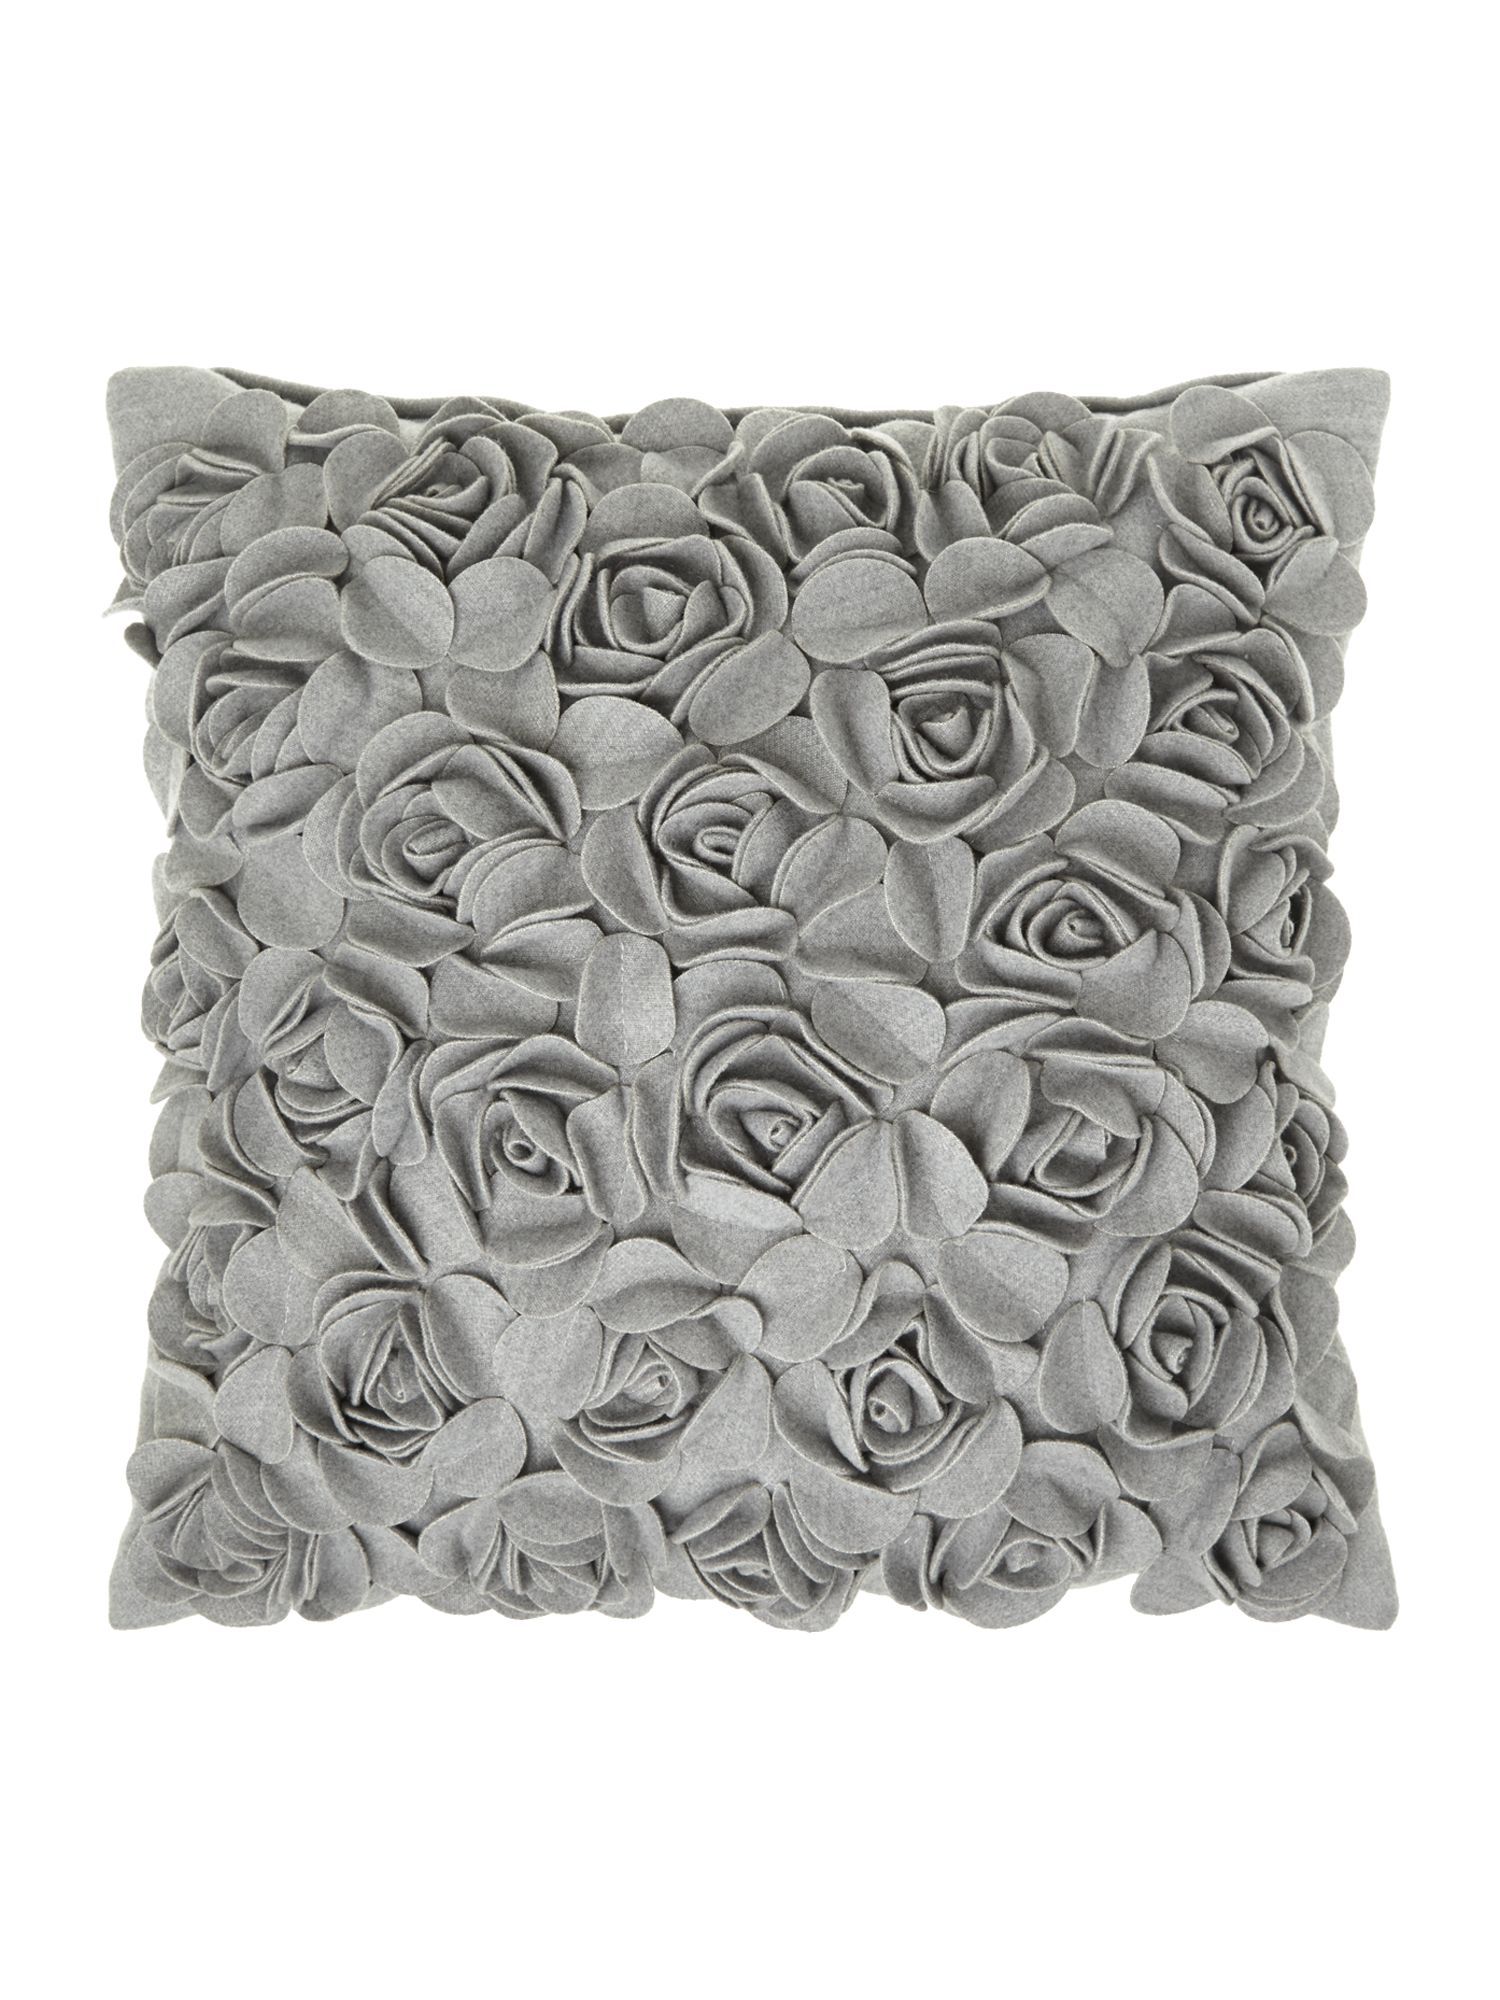 Light grey rose felt cushion